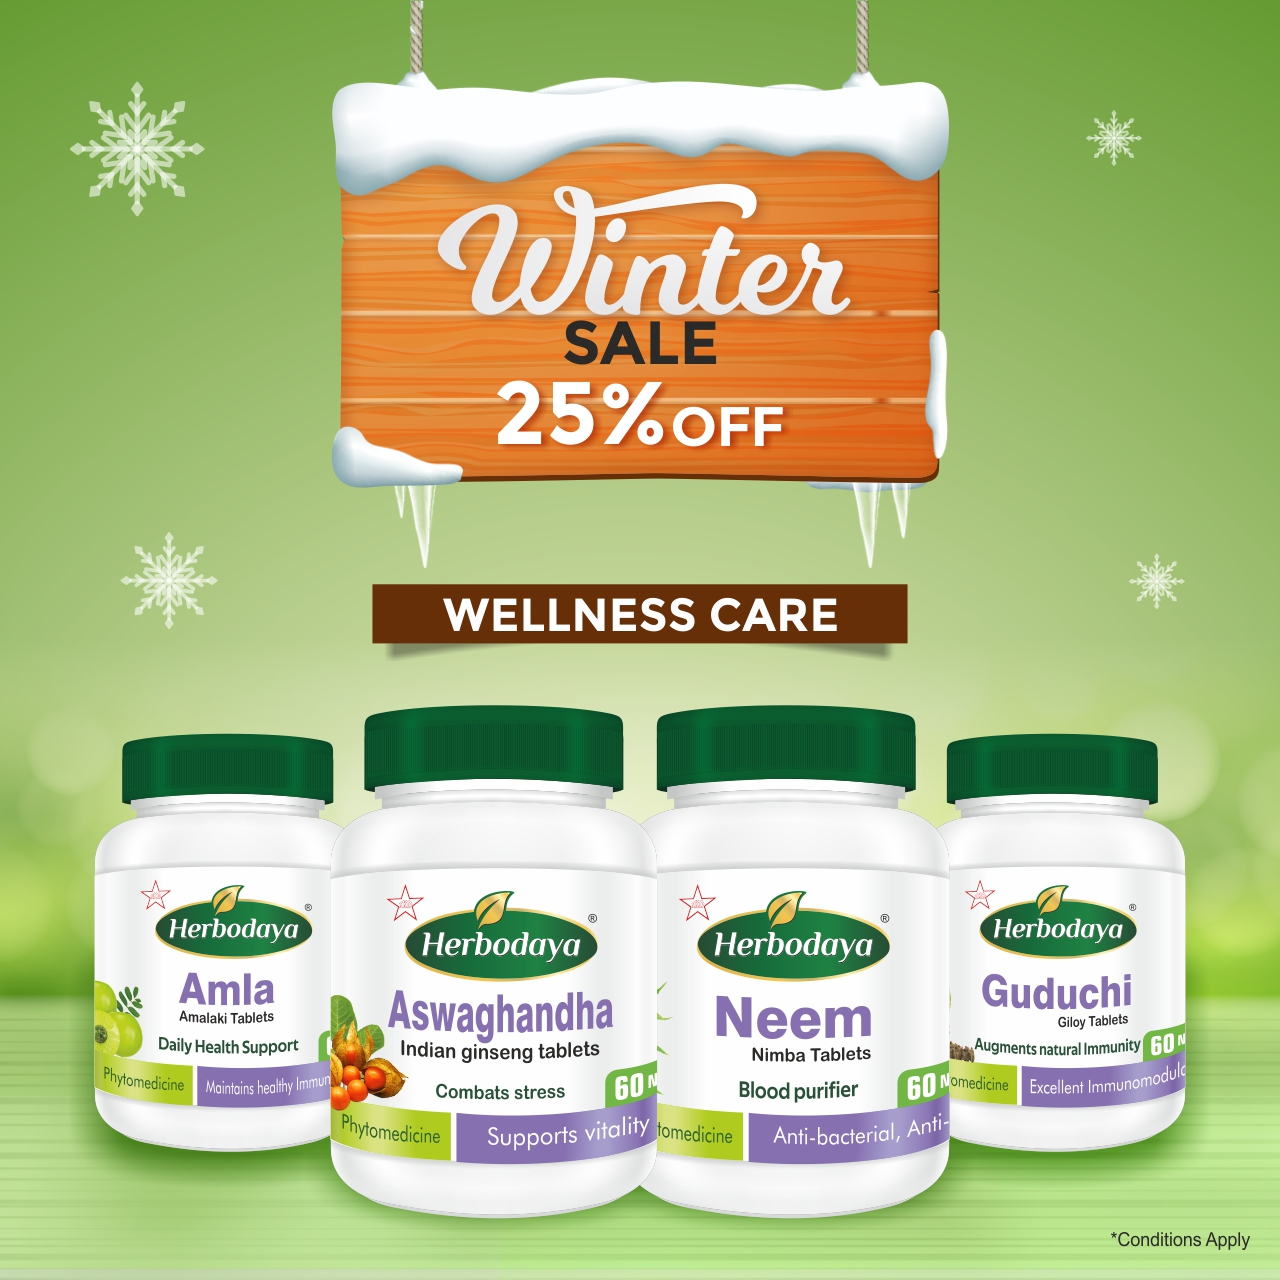 Wellness care offer-1